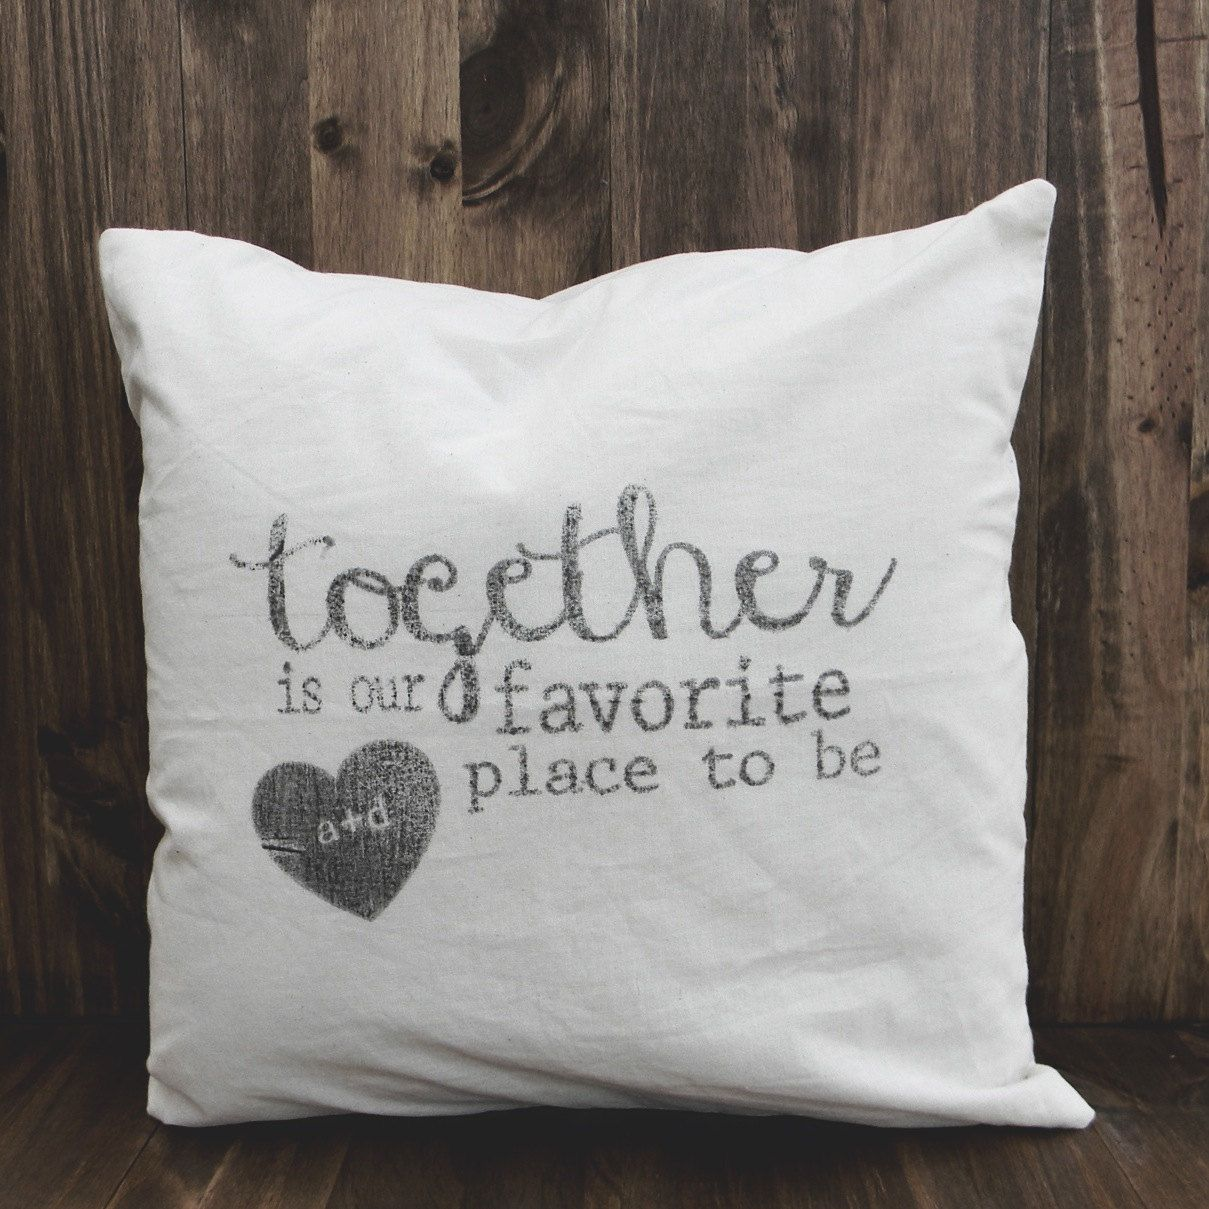 25+ unique Personalized pillows ideas on Pinterest | Transfer paper Personalized baby gifts and Baby boy gifts & 25+ unique Personalized pillows ideas on Pinterest | Transfer ... pillowsntoast.com